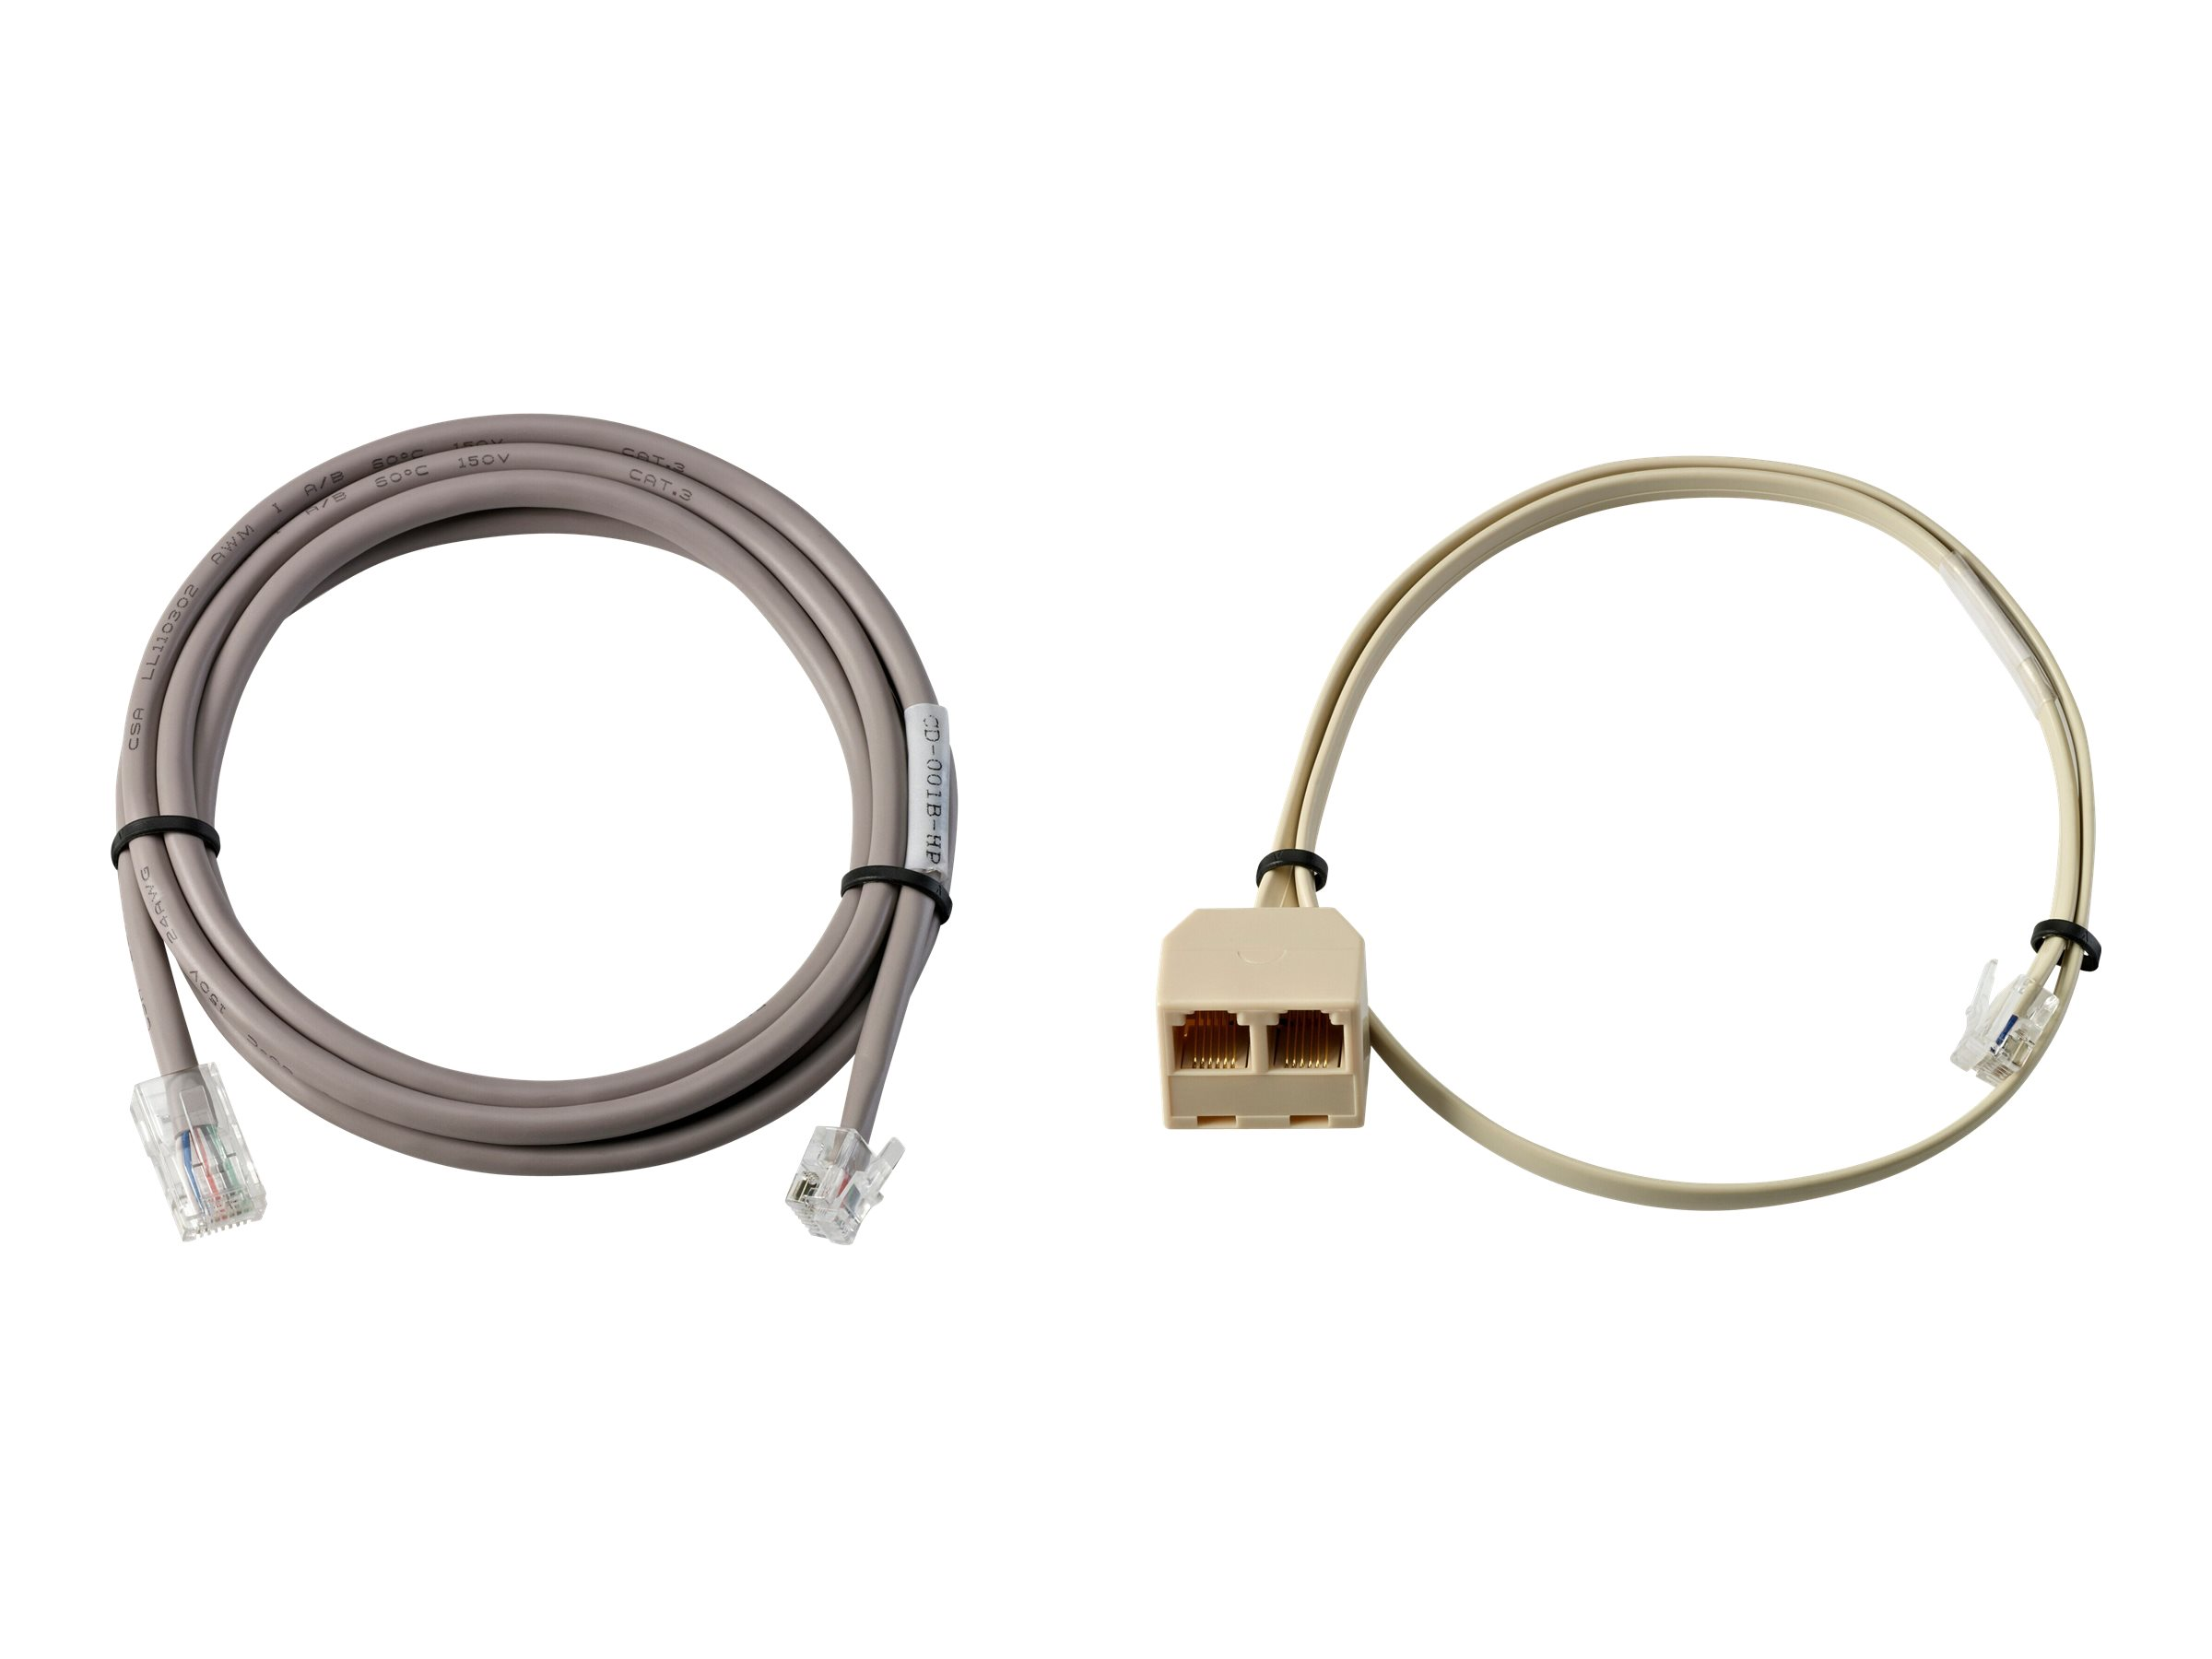 HP cash drawer cable - 1.803 m